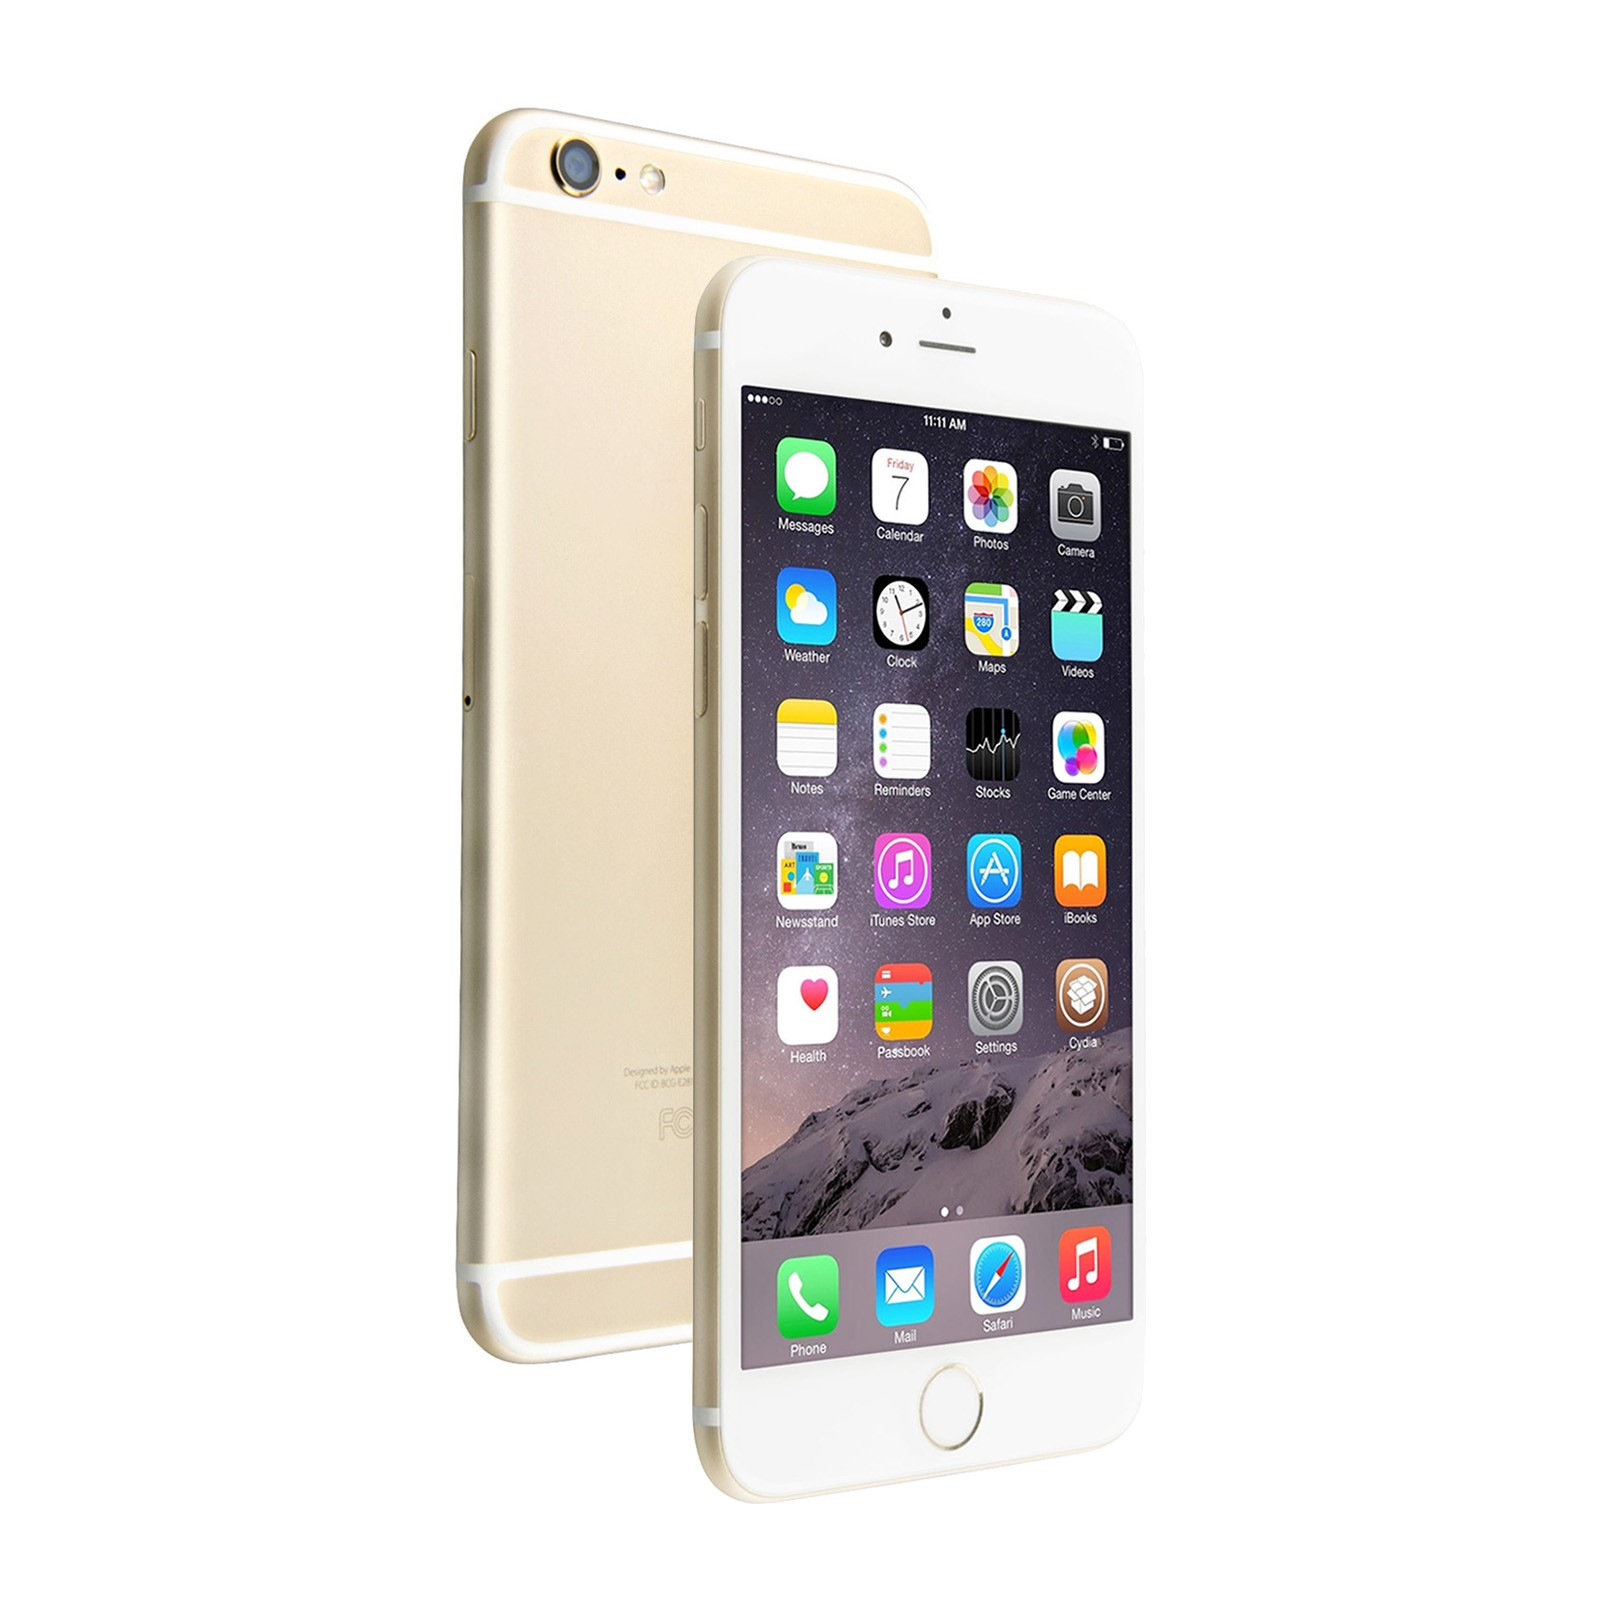 Apple iPhone 6 16GB T-Mobile Locked Smartphone (Gold)